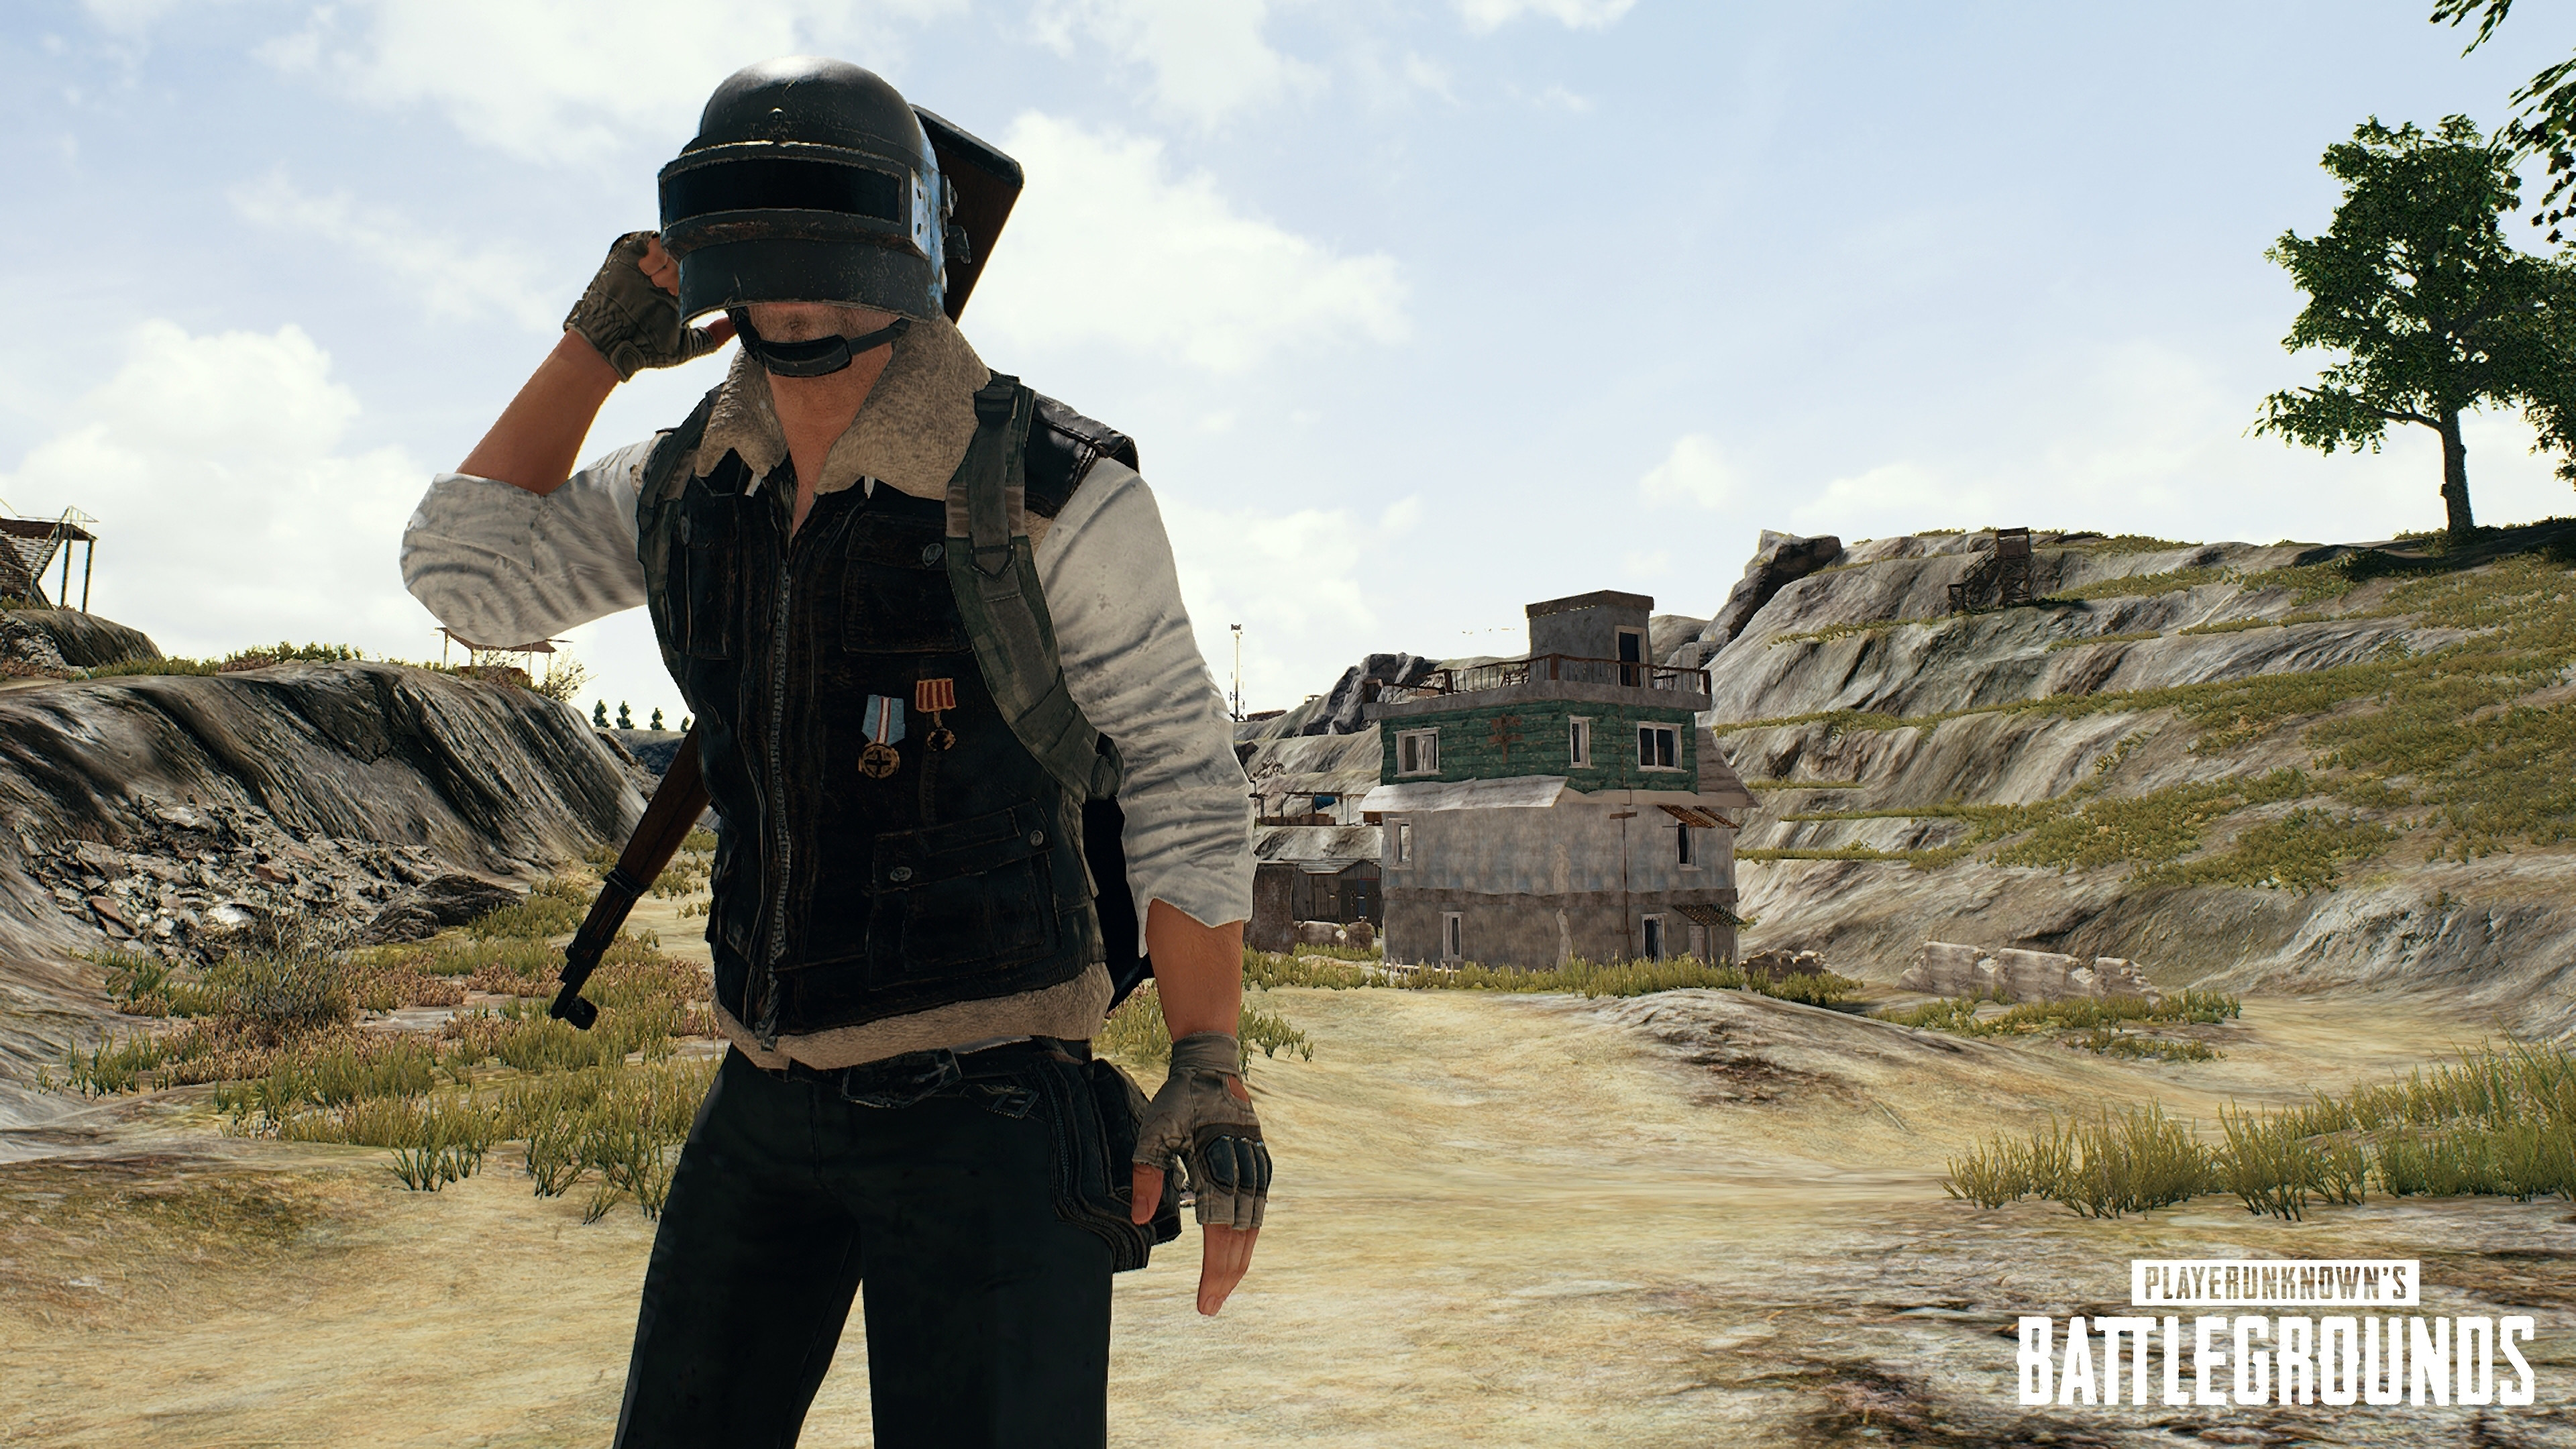 Pubg Wallpaper Dual Monitor: PUBG PUBG PlayerUnknown's Battlegrounds 4K Wallpaper